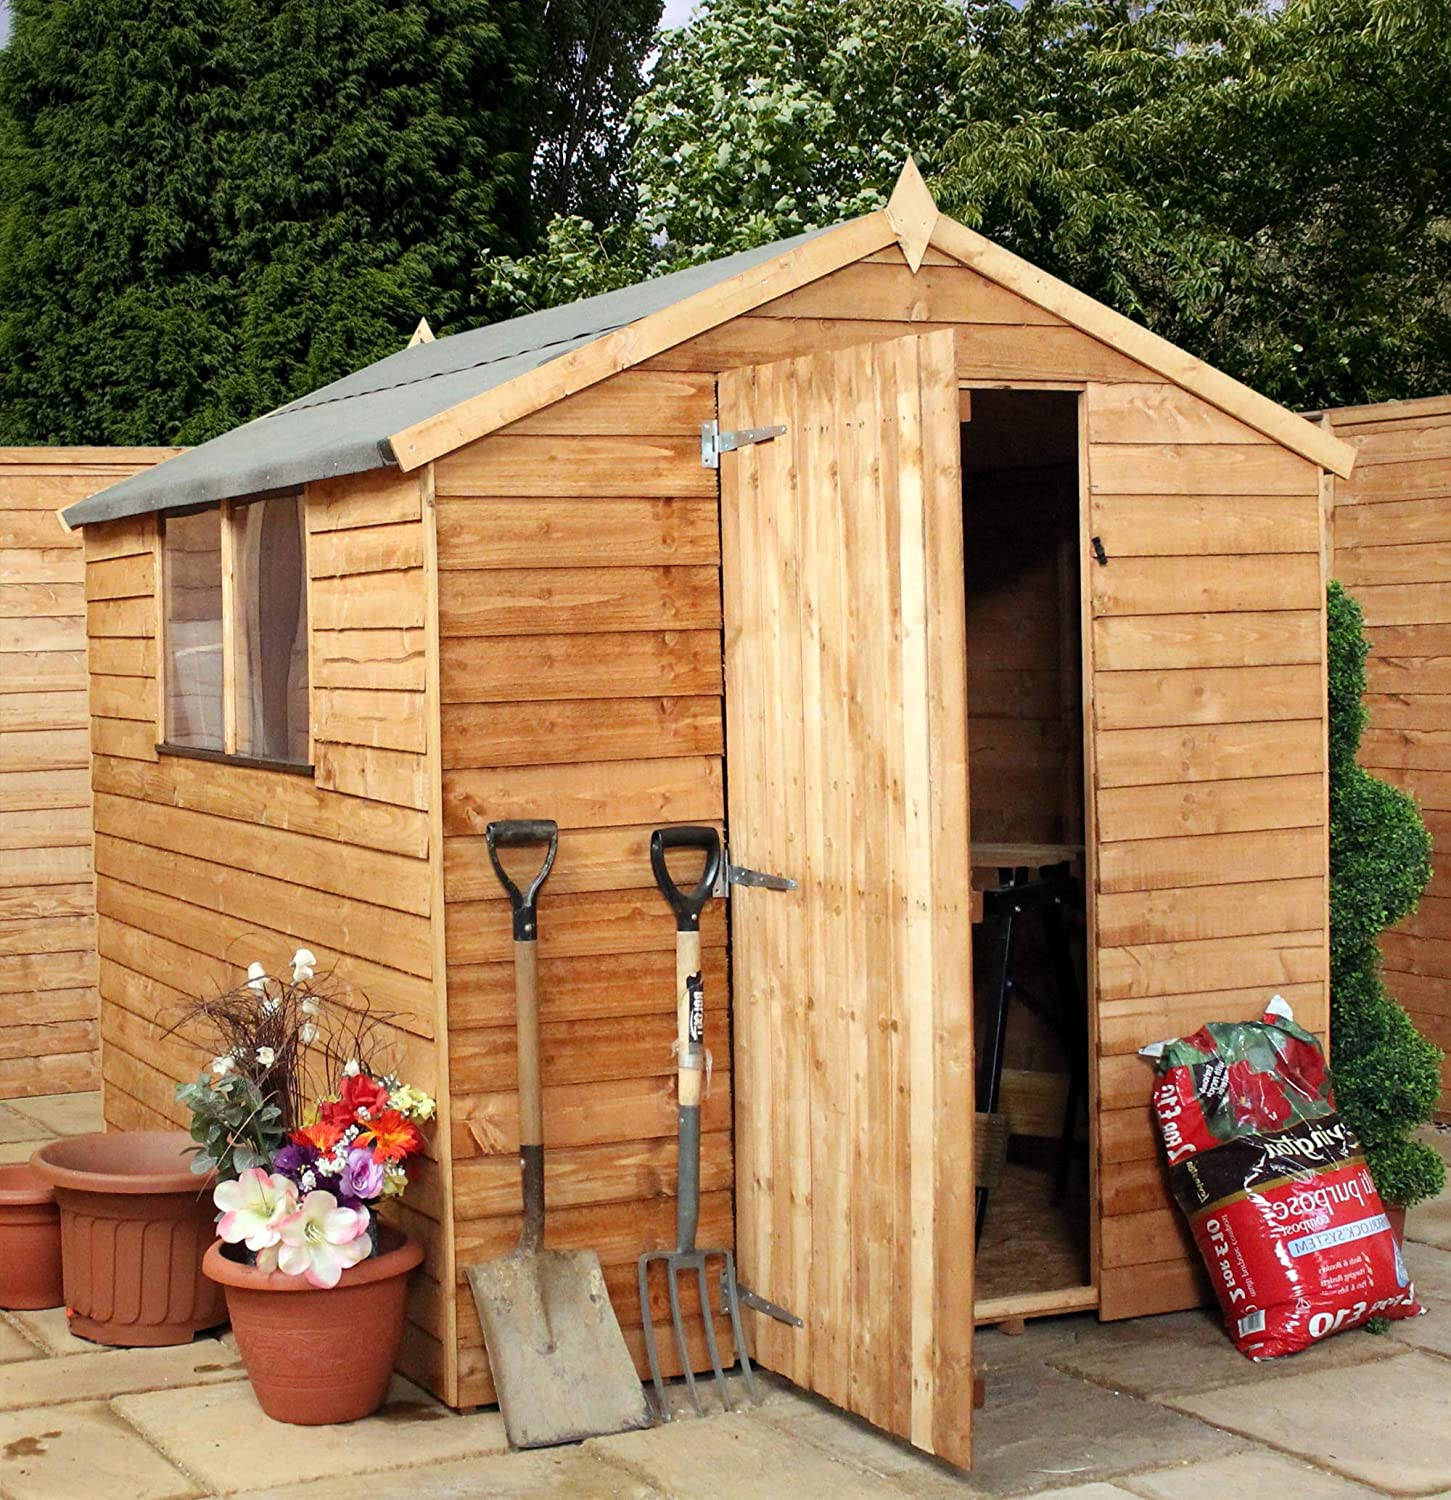 mercia 8 x 6 overlap apex wooden garden shed with single door and felt amazoncouk garden outdoors - Garden Sheds Wooden